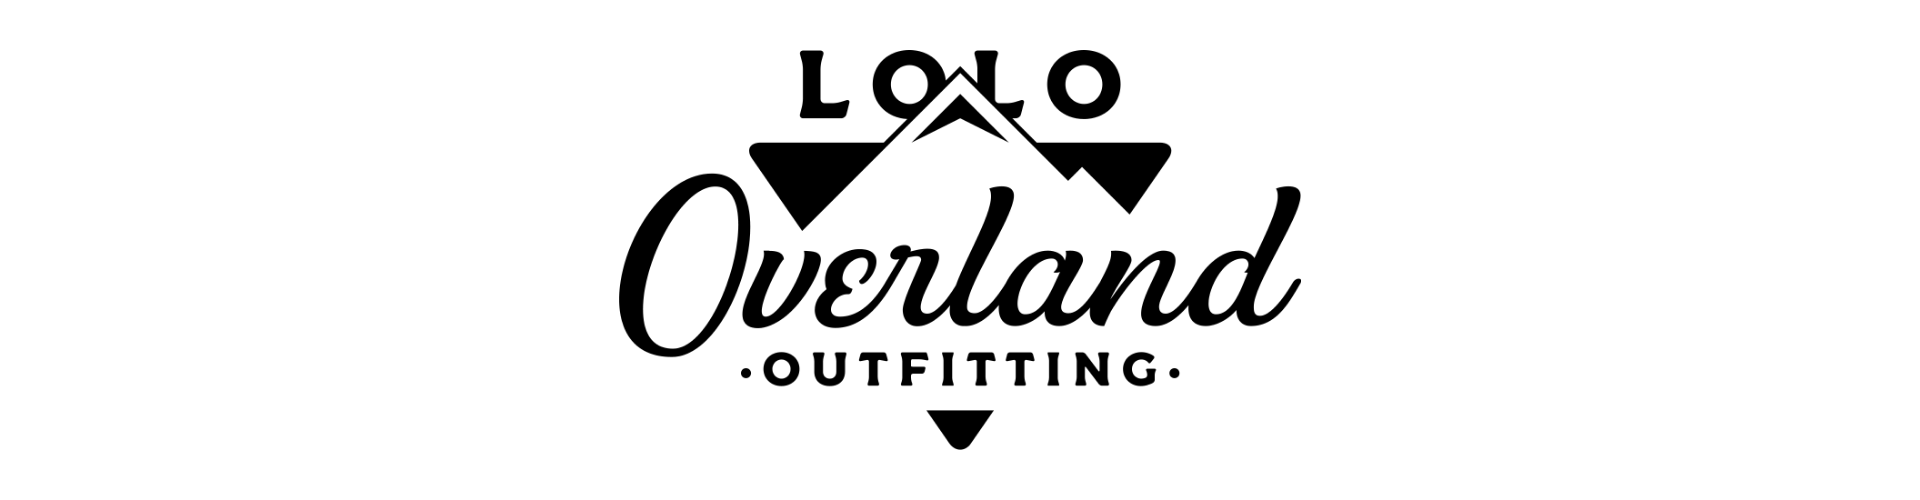 Lolo Overland joins the Boreas Campers Dealer Family